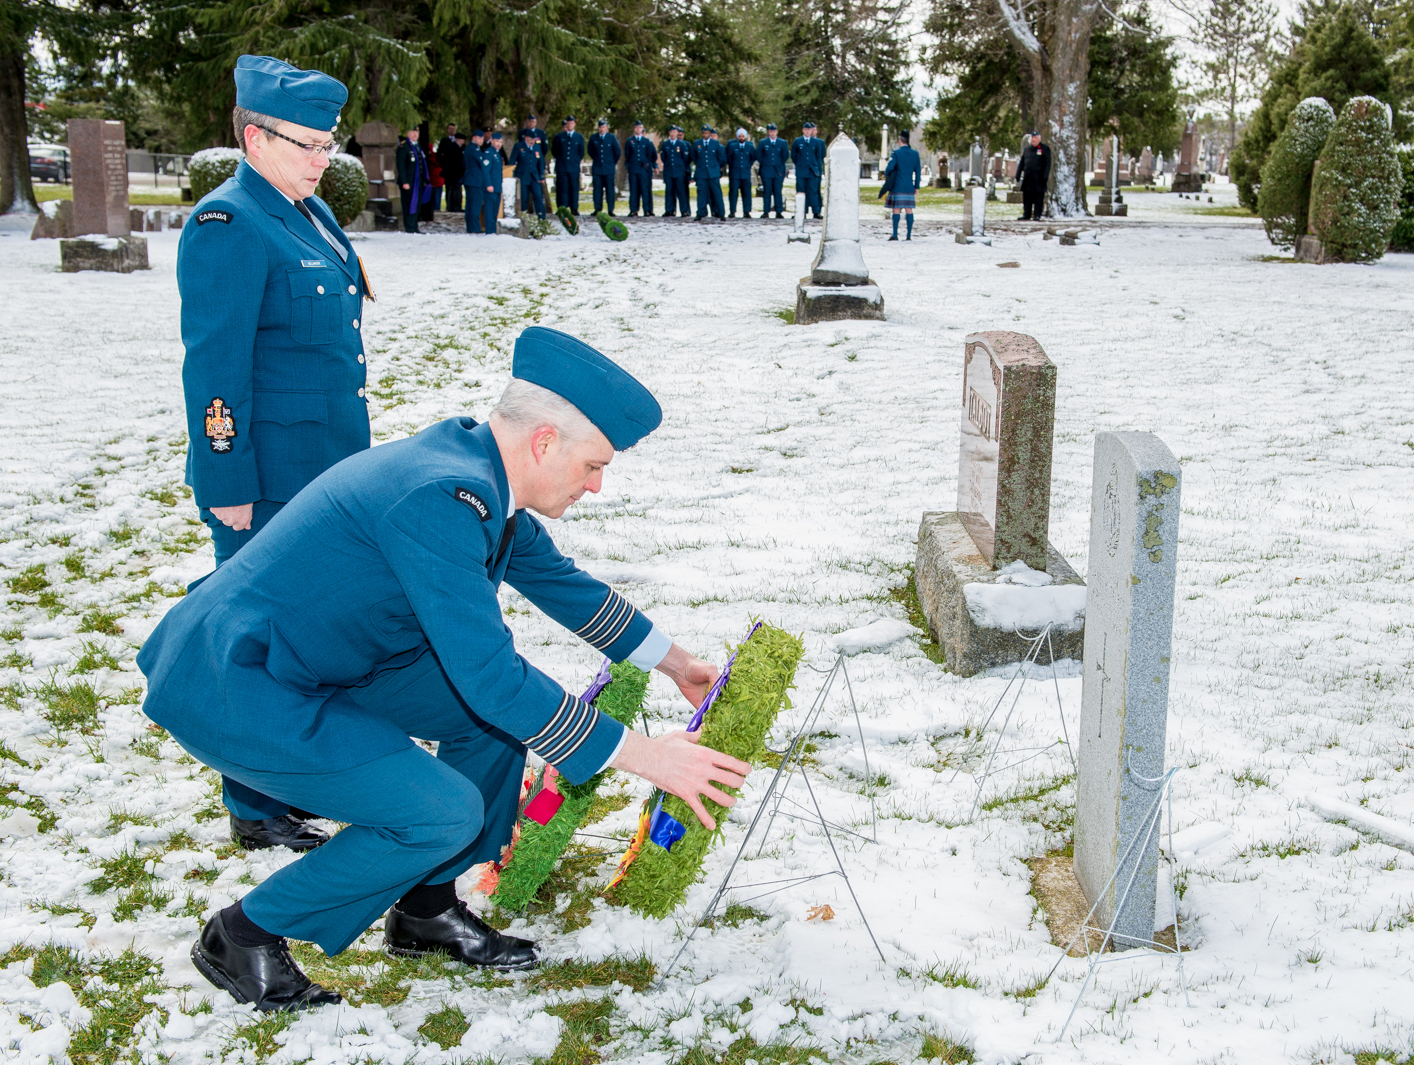 Accompanied by Chief Warrant Officer Necole Belanger, Colonel Andrew Fleming places a wreath at the grave of Cadet James Talbot on April 7, 2017. PHOTO: Corporal Aydyn Neifer, BM03-2017-0107-13